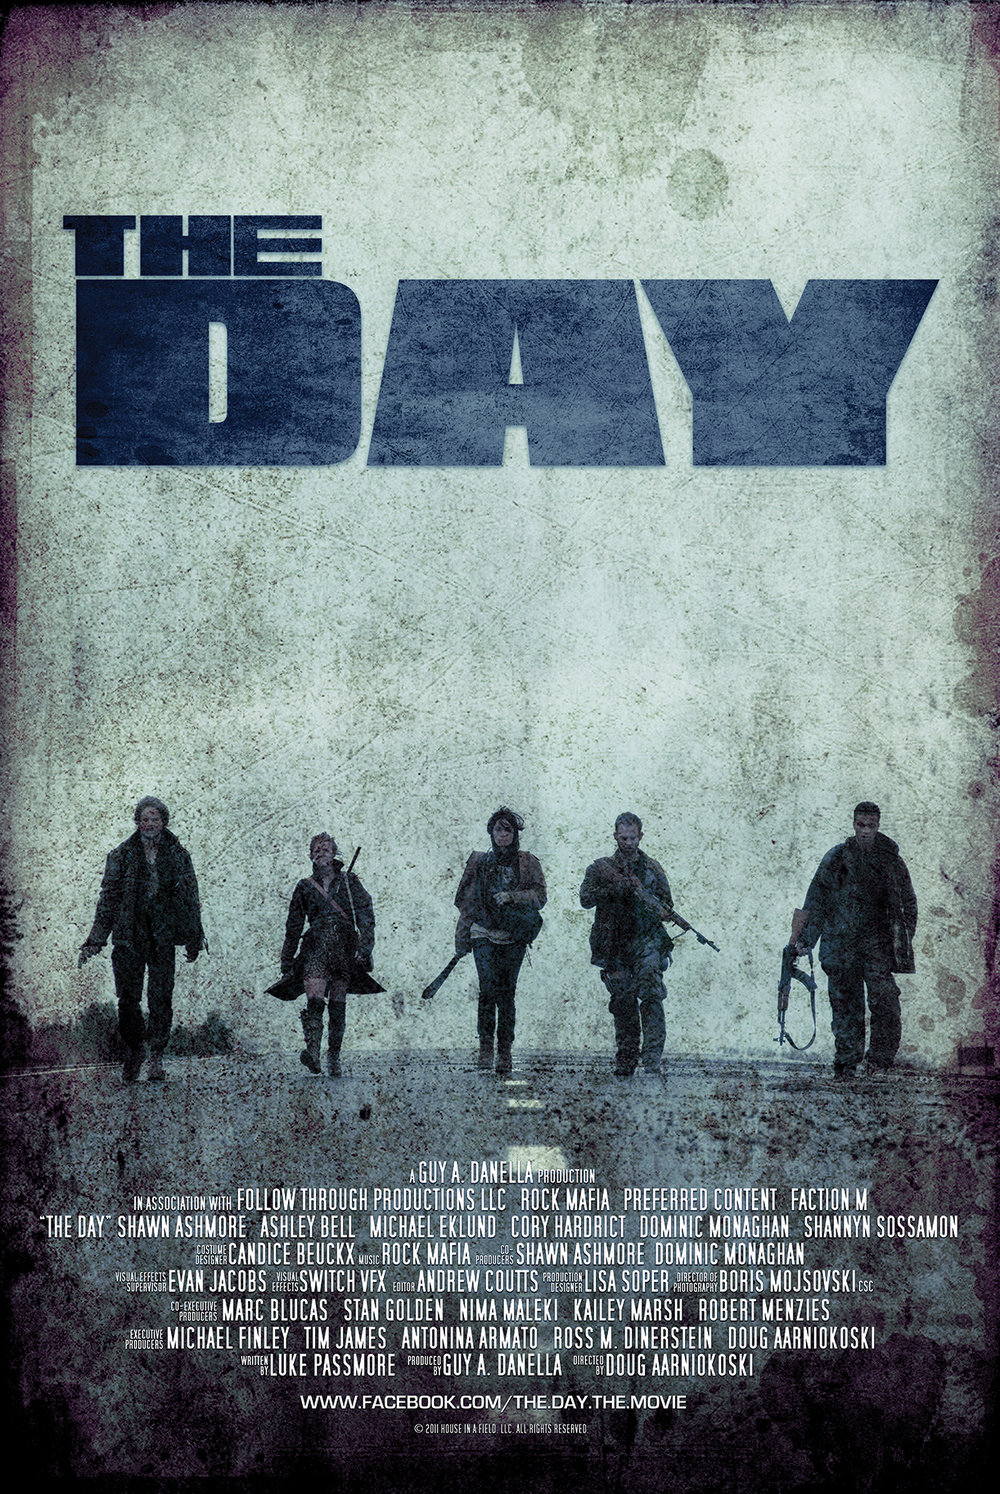 the-day-tiff-poster-web.jpg